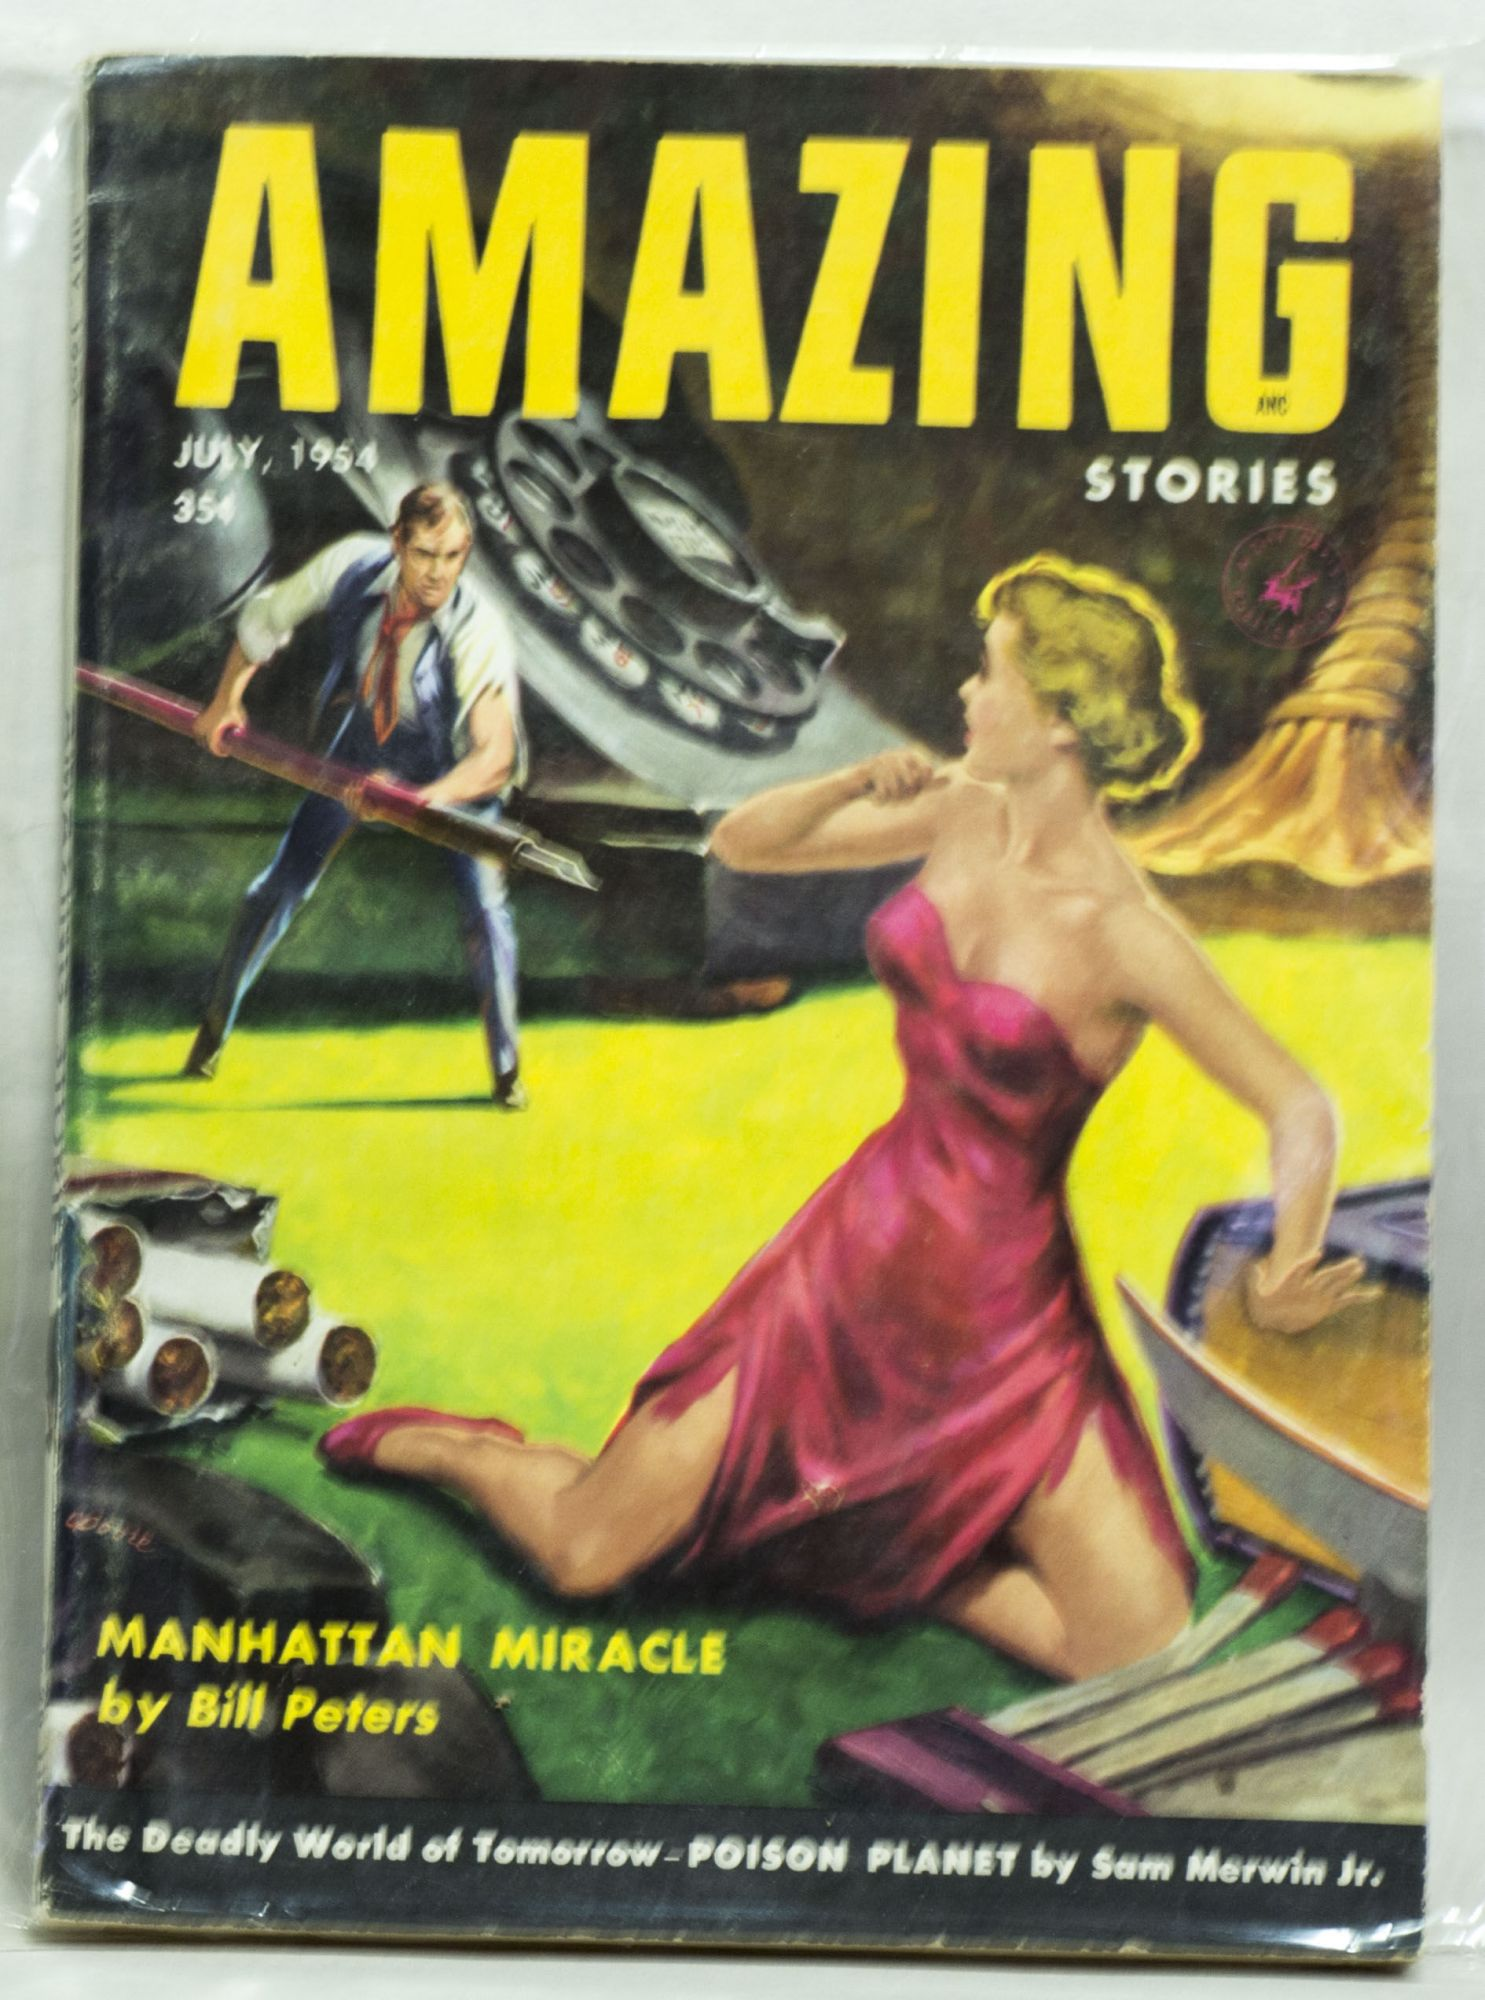 Amazing Stories - July, 1954 - Vol 28 No 3 35¢